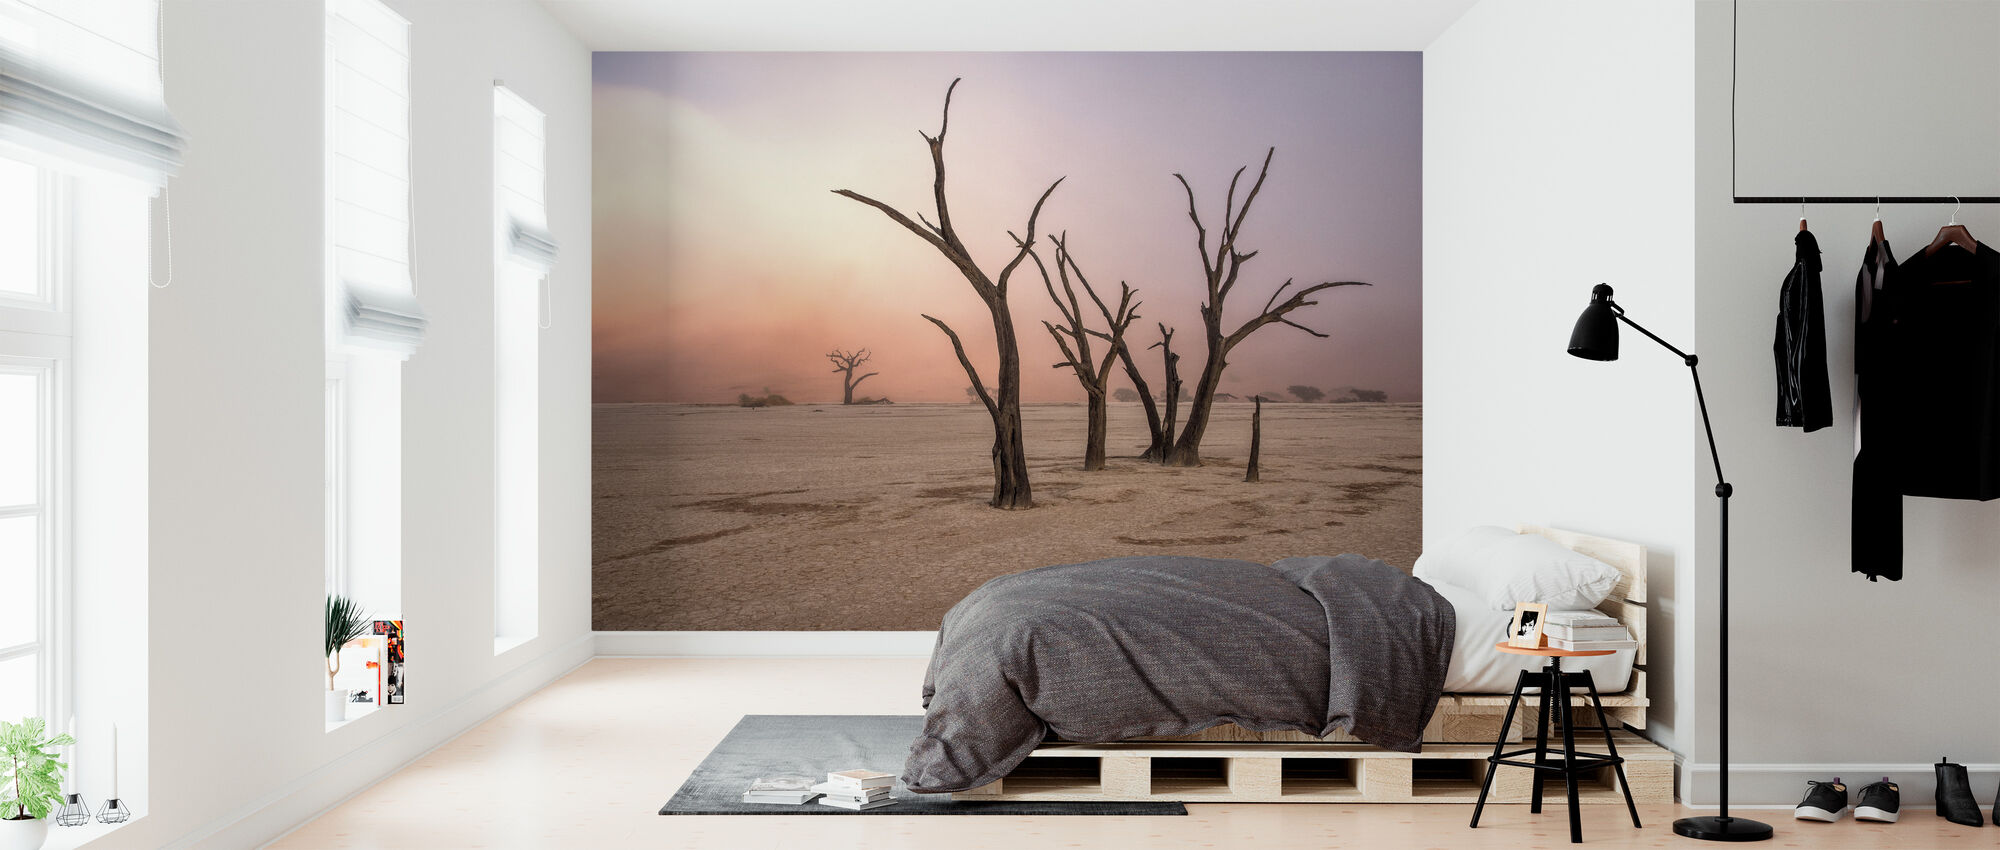 Fog in Deadvlei - Wallpaper - Bedroom